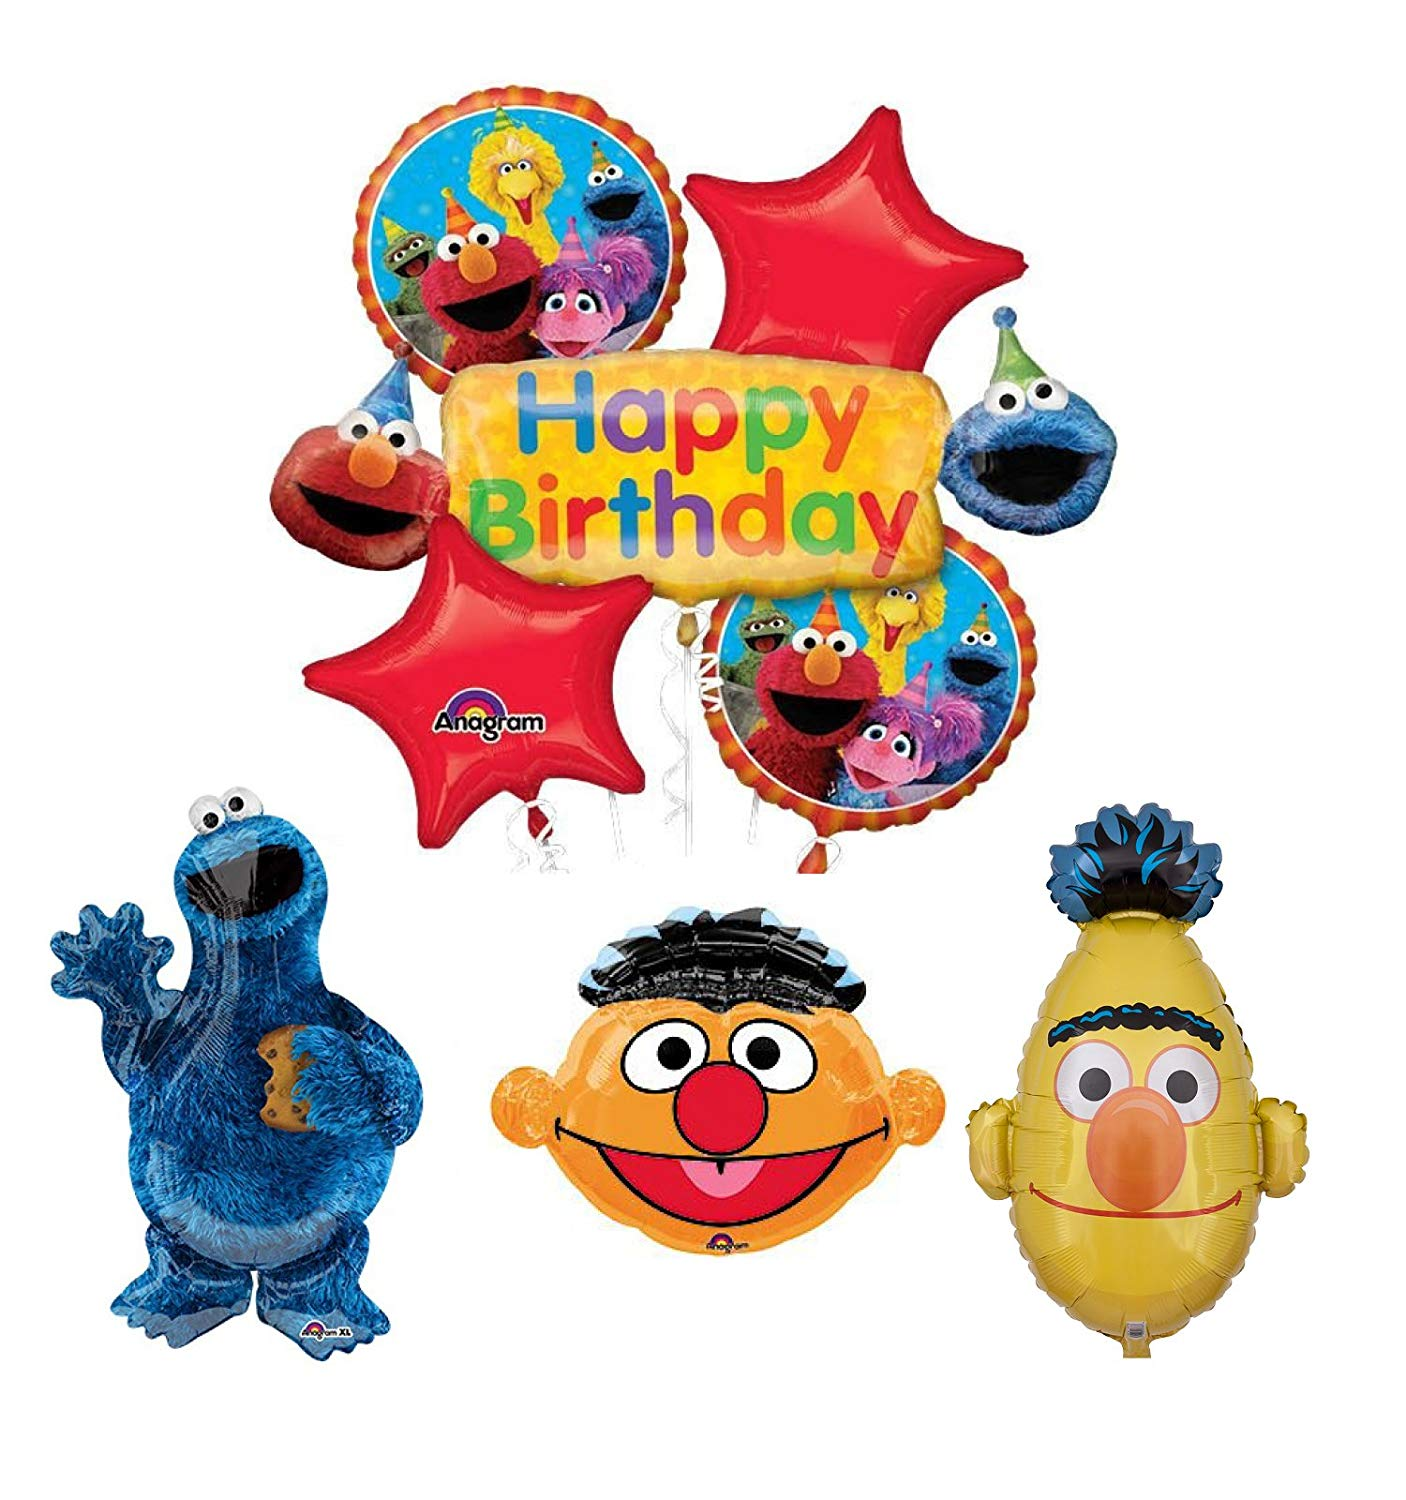 Mayflower Products Sesame Street Cookie Monster Bert and Ernie Birthday  Party Supplies and Balloon Bouquet Decorations.